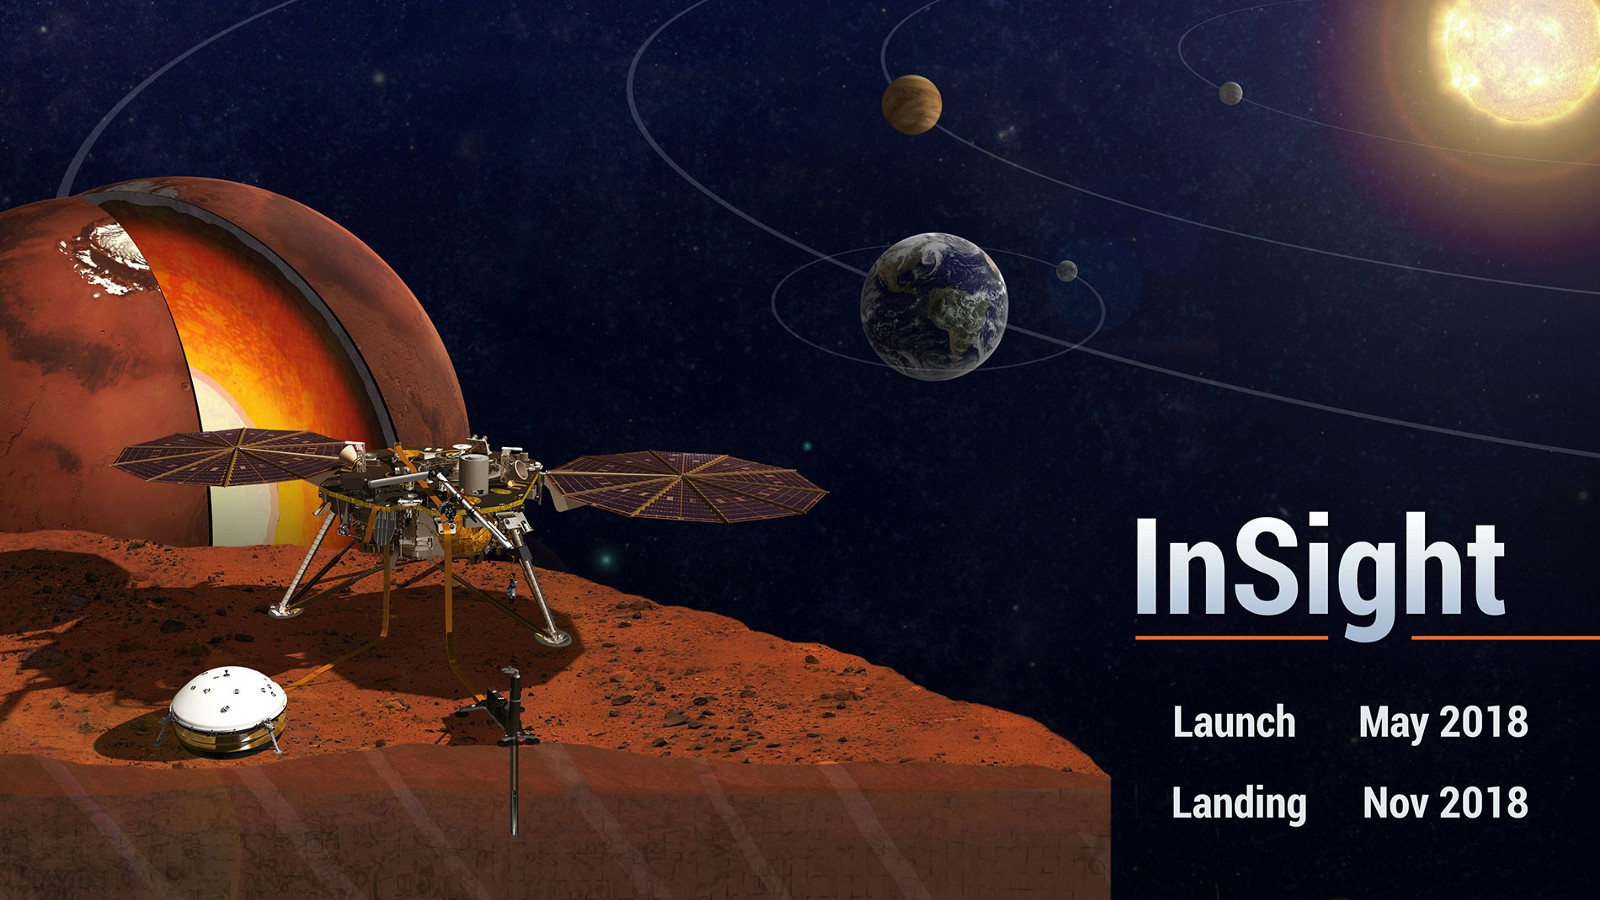 /send-your-name-to-mars-get-a-nasa-boarding-pass-332f0b76ab4 feature image